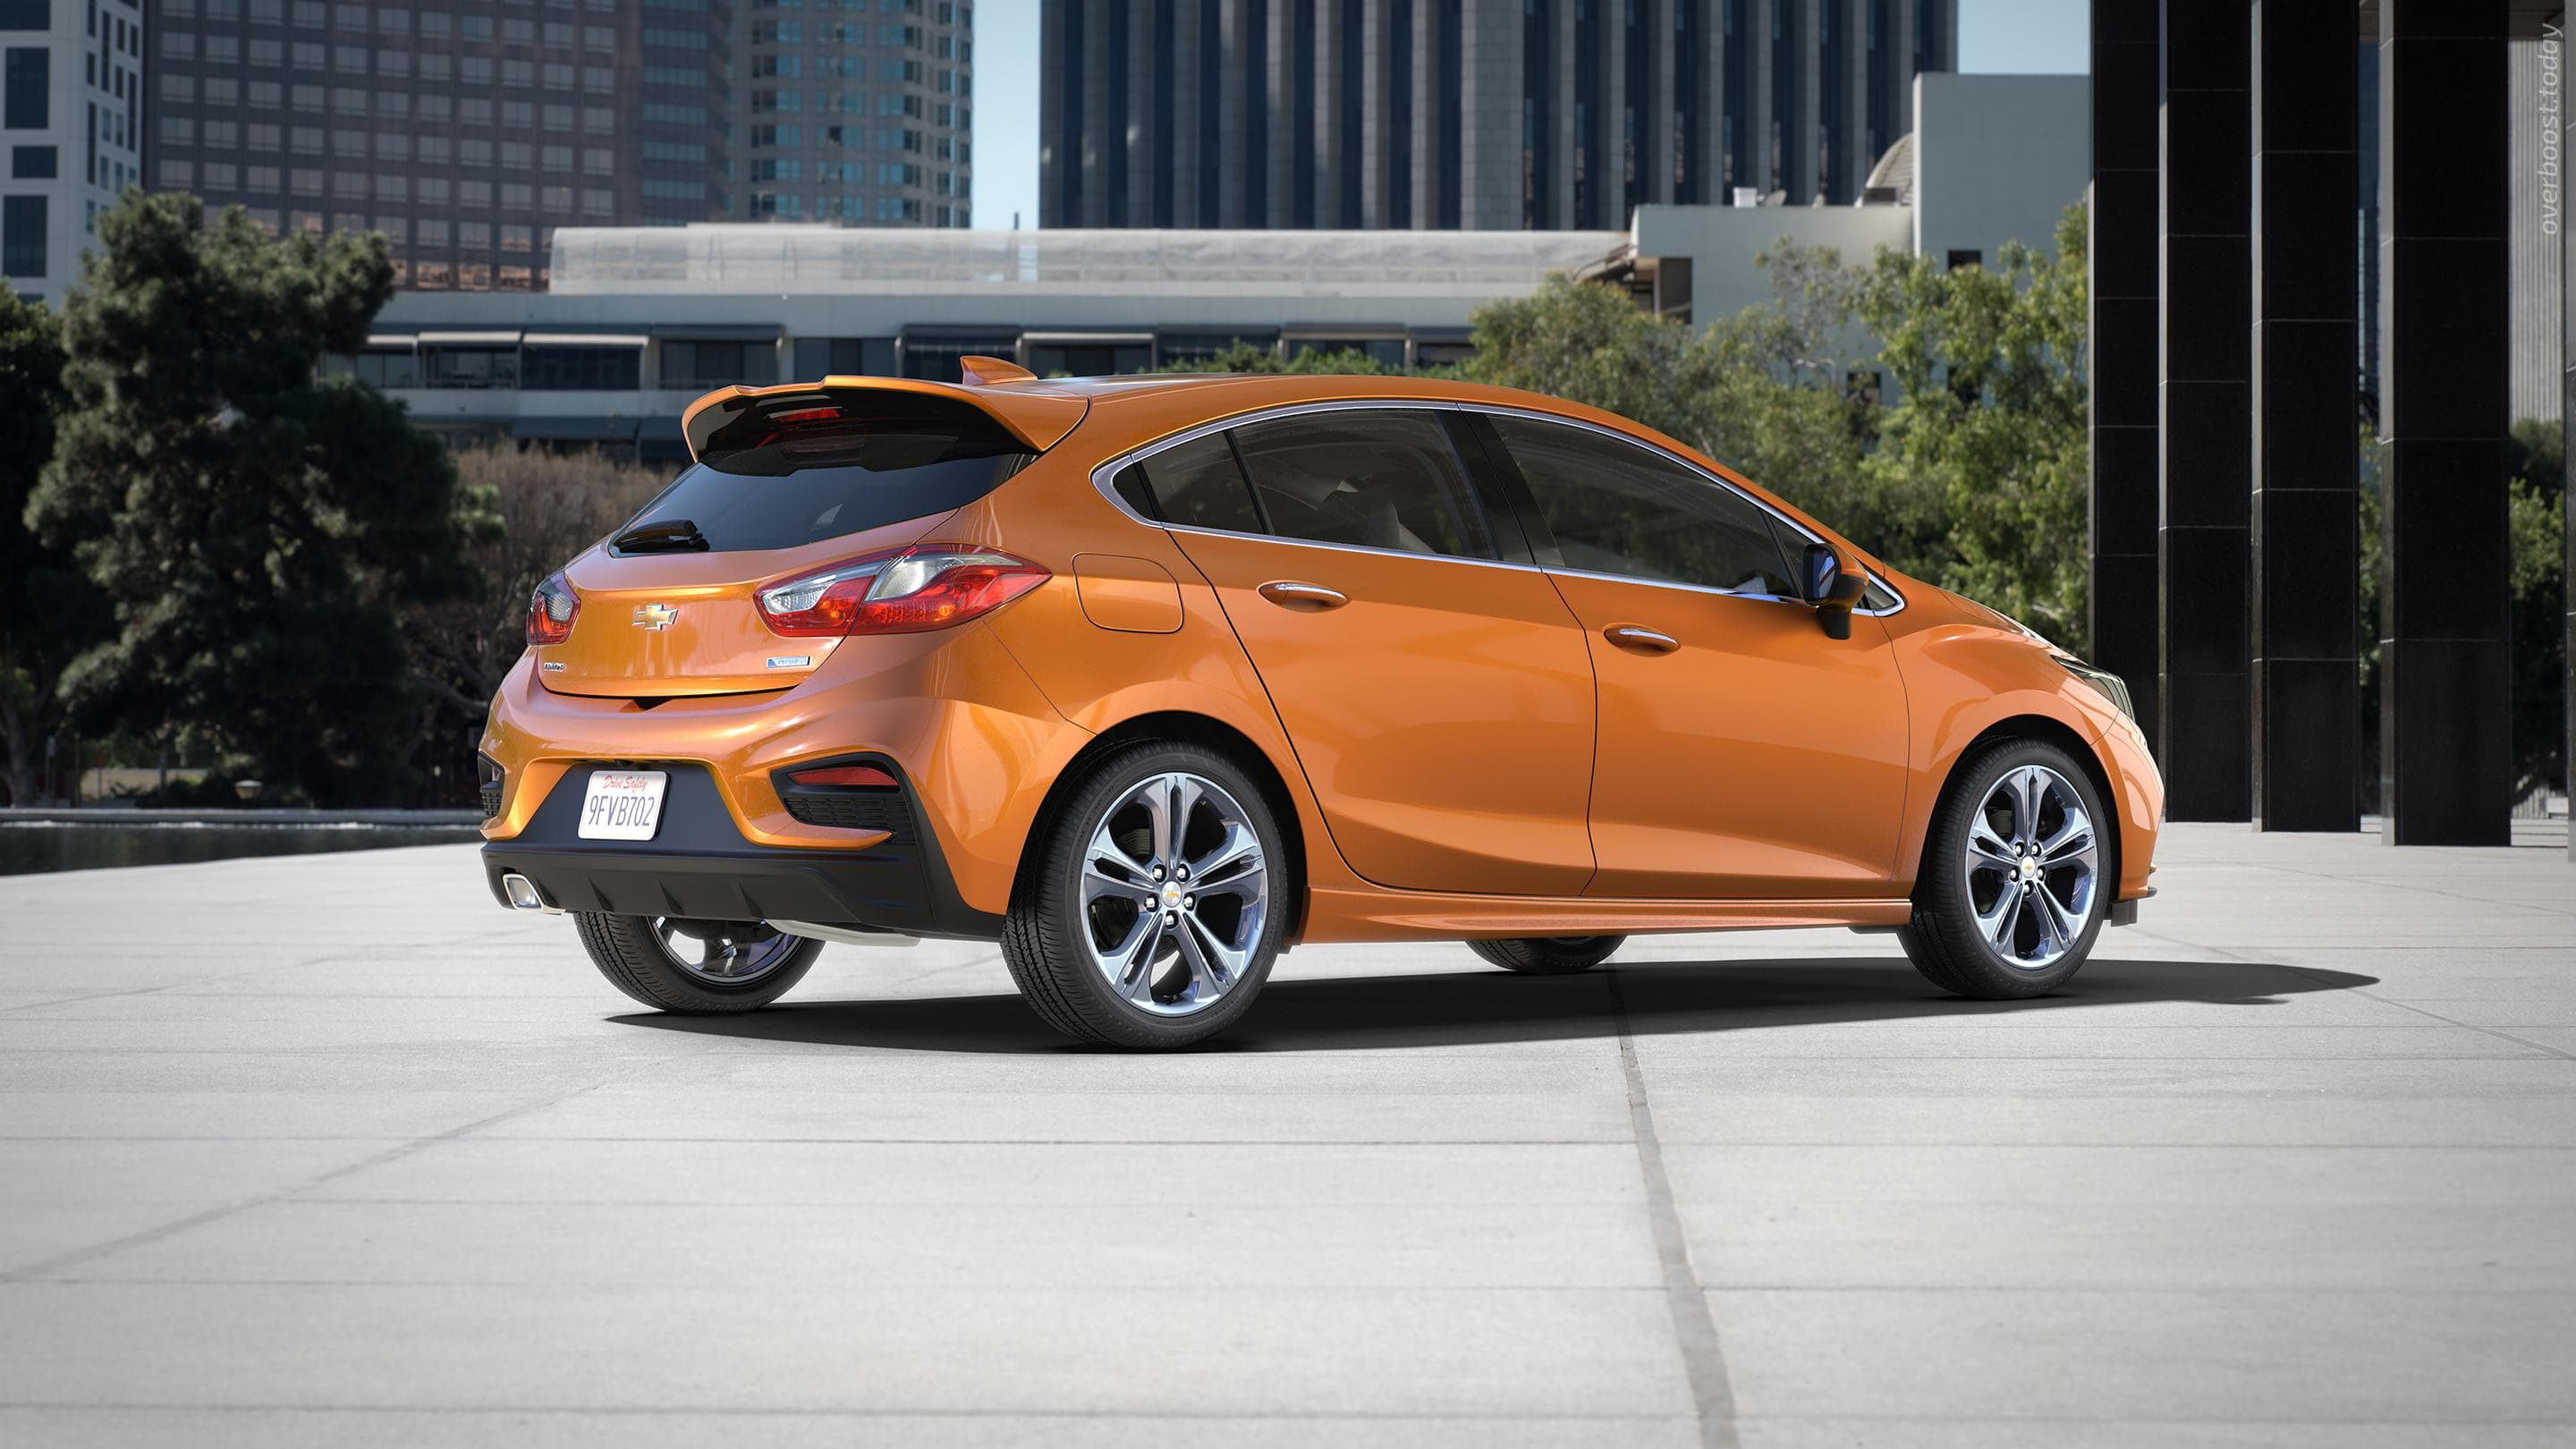 Chevrolet Cruze 2 Hatchback Pictures